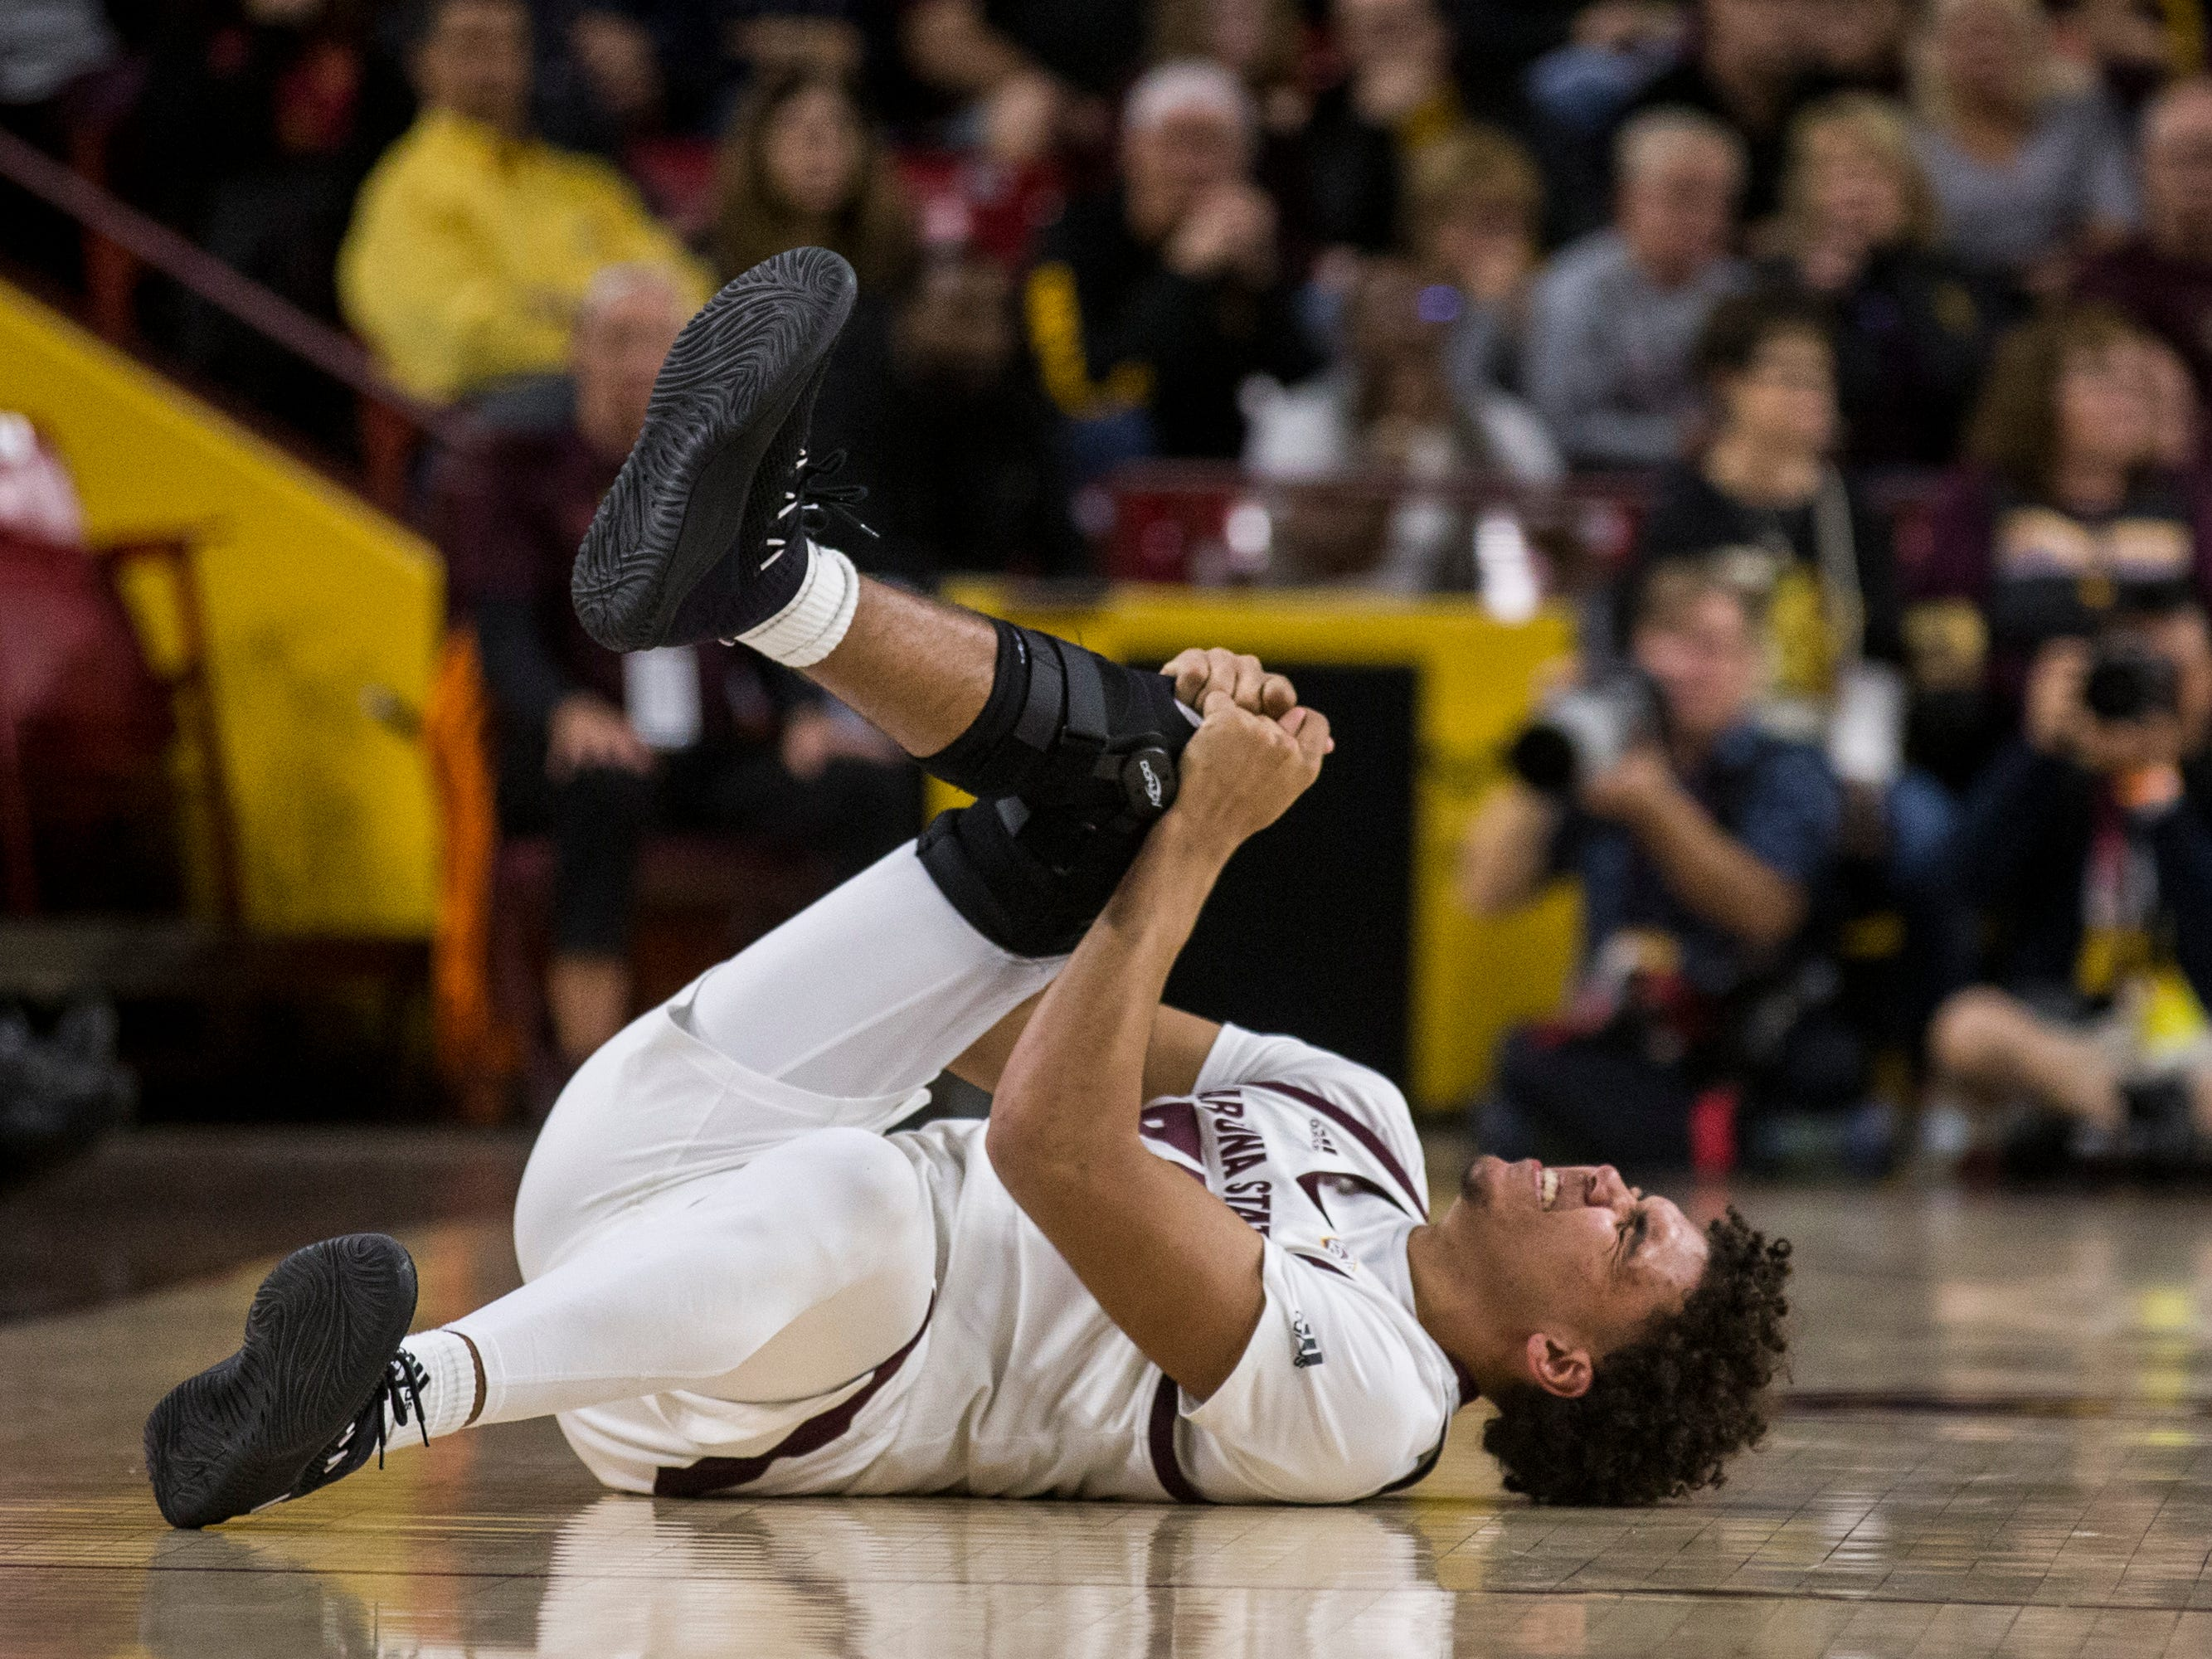 Arizona State's Taeshon Cherry grimaces in pain in the first half against Texas Southern on Saturday, Dec. 1, 2018, at Wells Fargo Arena in Tempe, Ariz.